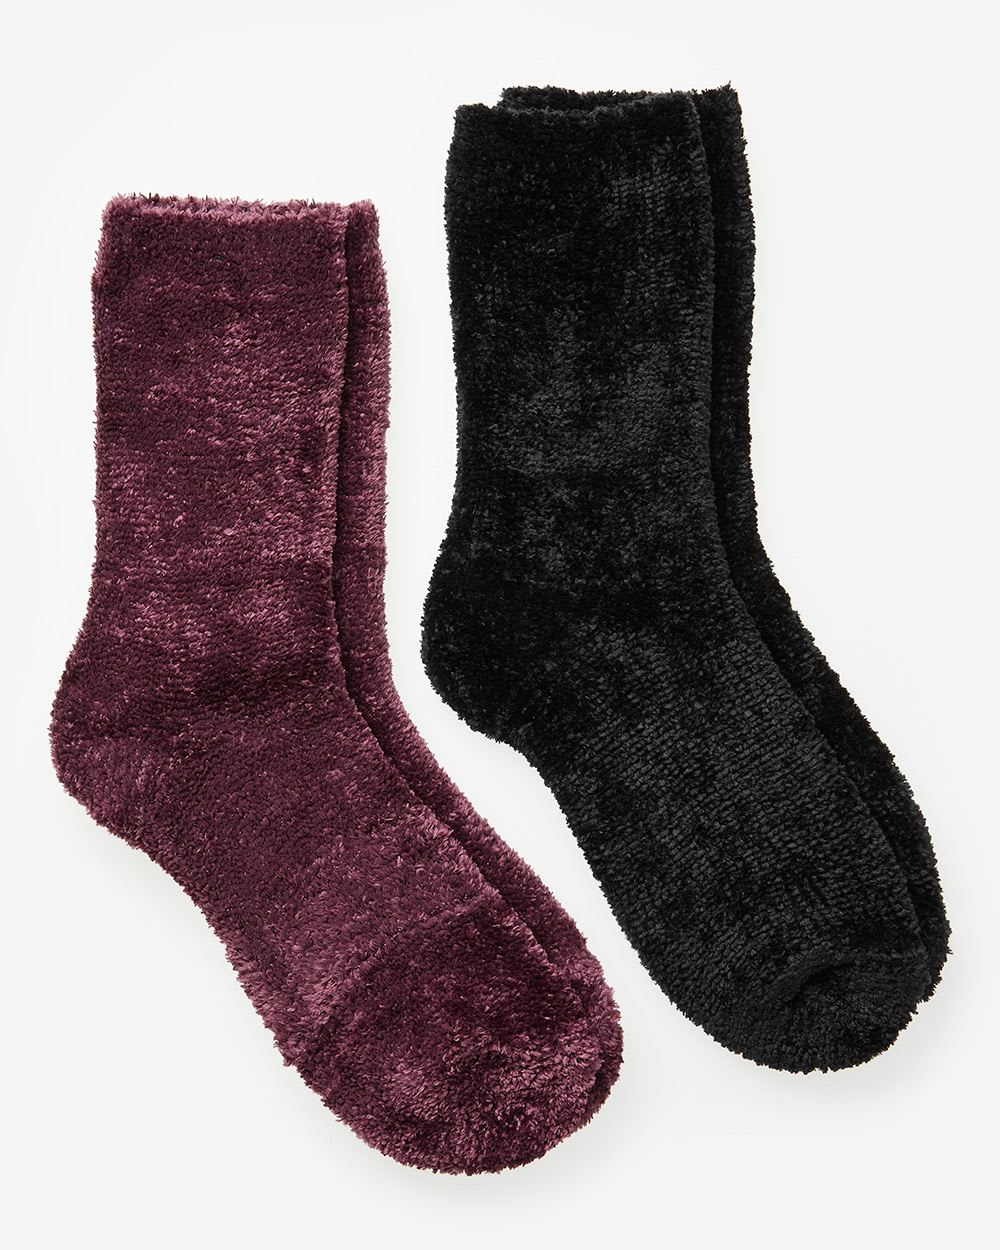 2-Pair Set of Chenille Socks